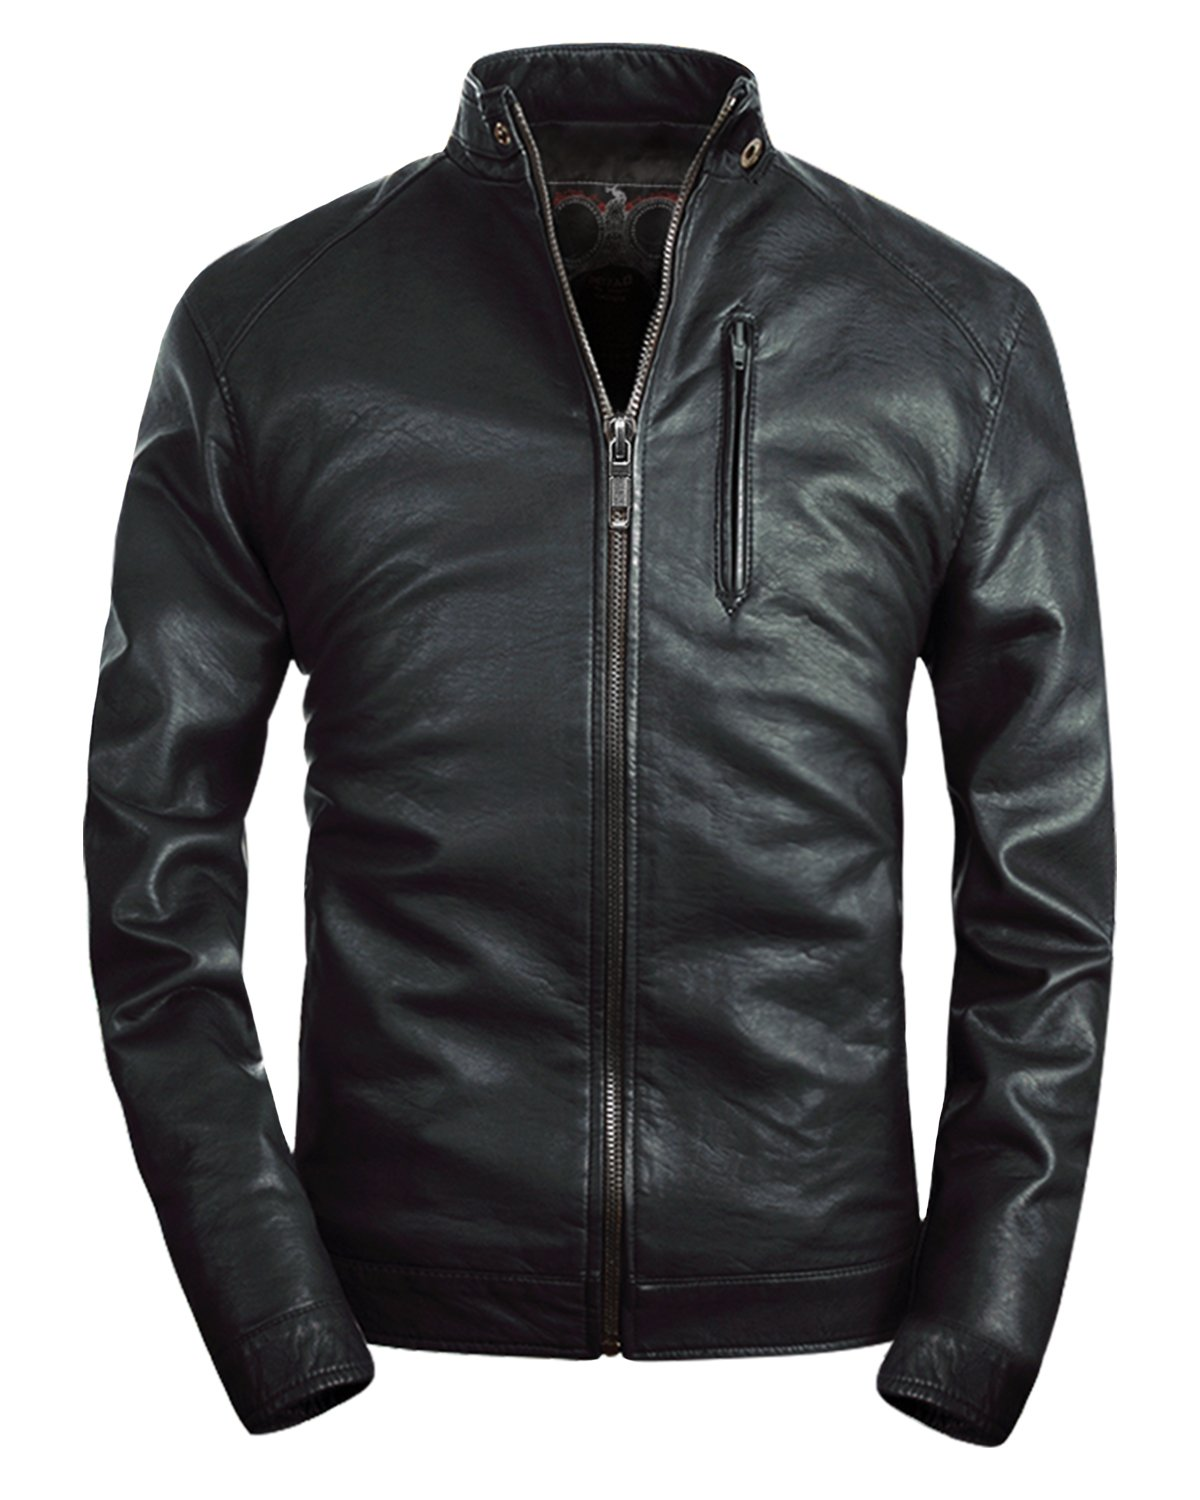 Fairylinks Mens Stand Collar Faux Leather Jacket Classic Moto Zip up Black, US S